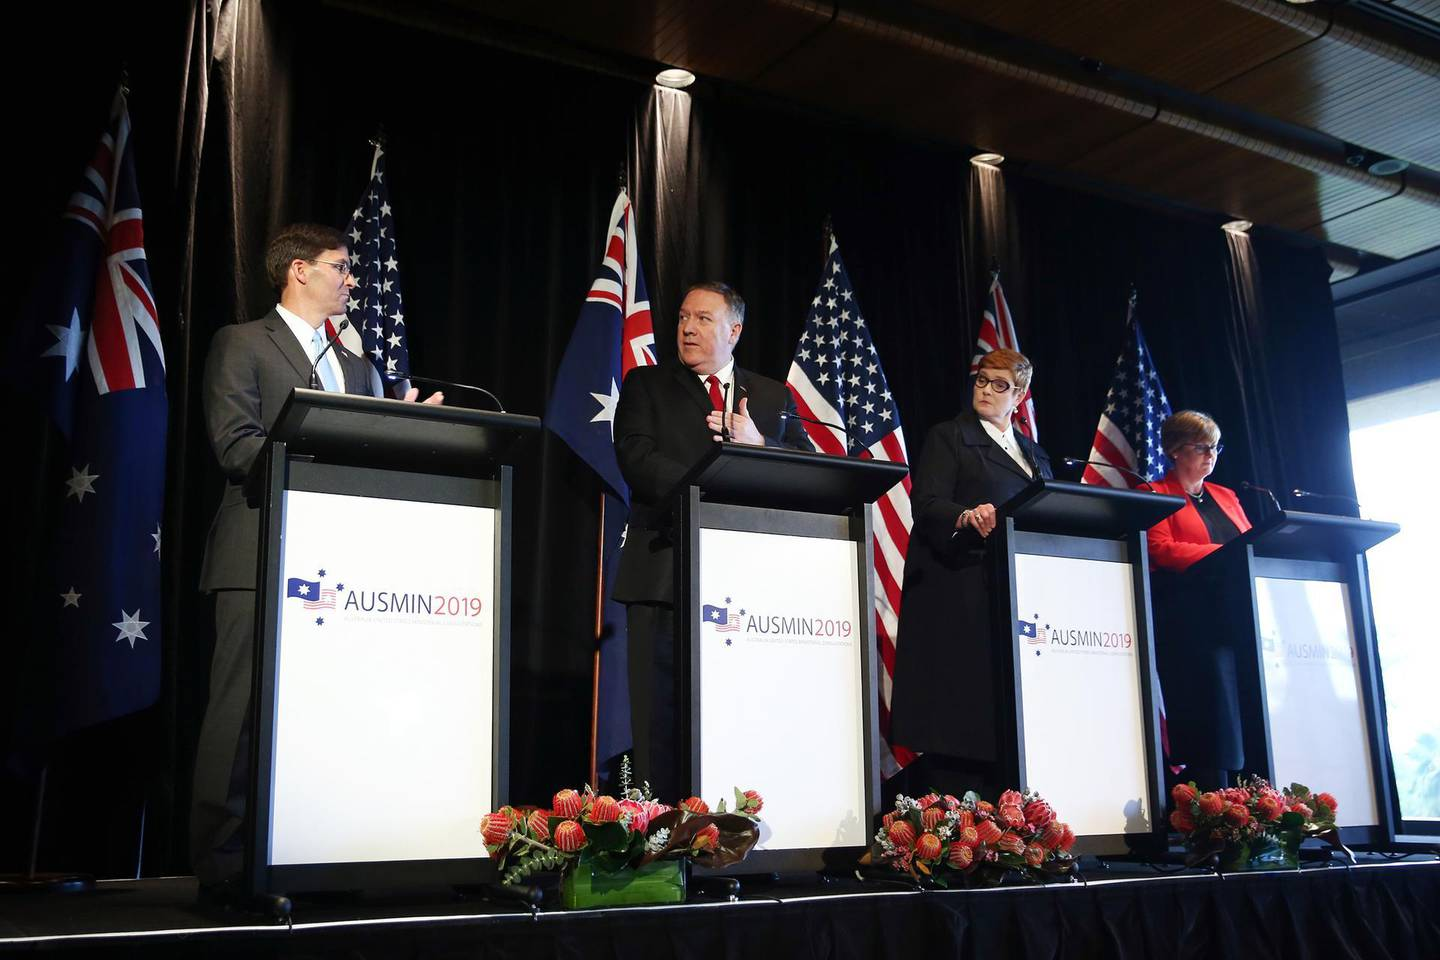 """Mike Pompeo, U.S. secretary of state, second left, speaks as Mark Esper, U.S. Secretary of Defense, left, Marise Payne, Australia's foreign minister, second right, and Linda Reynolds, Australia's defense minister, listen during a news conference in Sydney, Australia, on Sunday, Aug. 4, 2019. Secretary of DefenseMark Espersaid the U.S. is firmly against China's """"destabilizing"""" behavior in the Indo-Pacific, and won't stand by while one country reshapes the region, continuing a war of words between the superpowers. Photographer: Brendon Thorne/Bloomberg"""